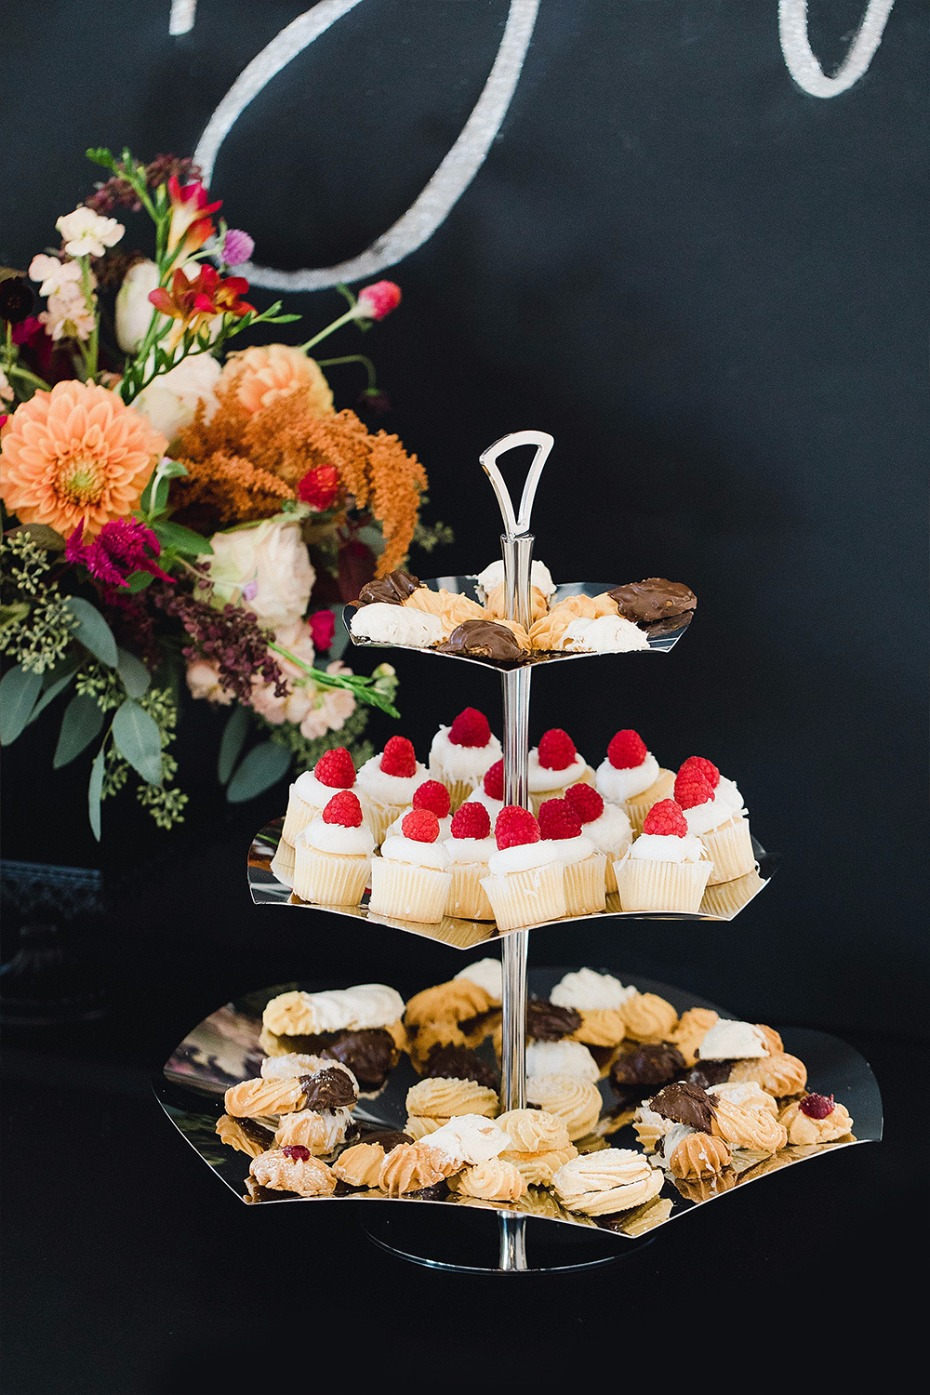 serving tray of sweets